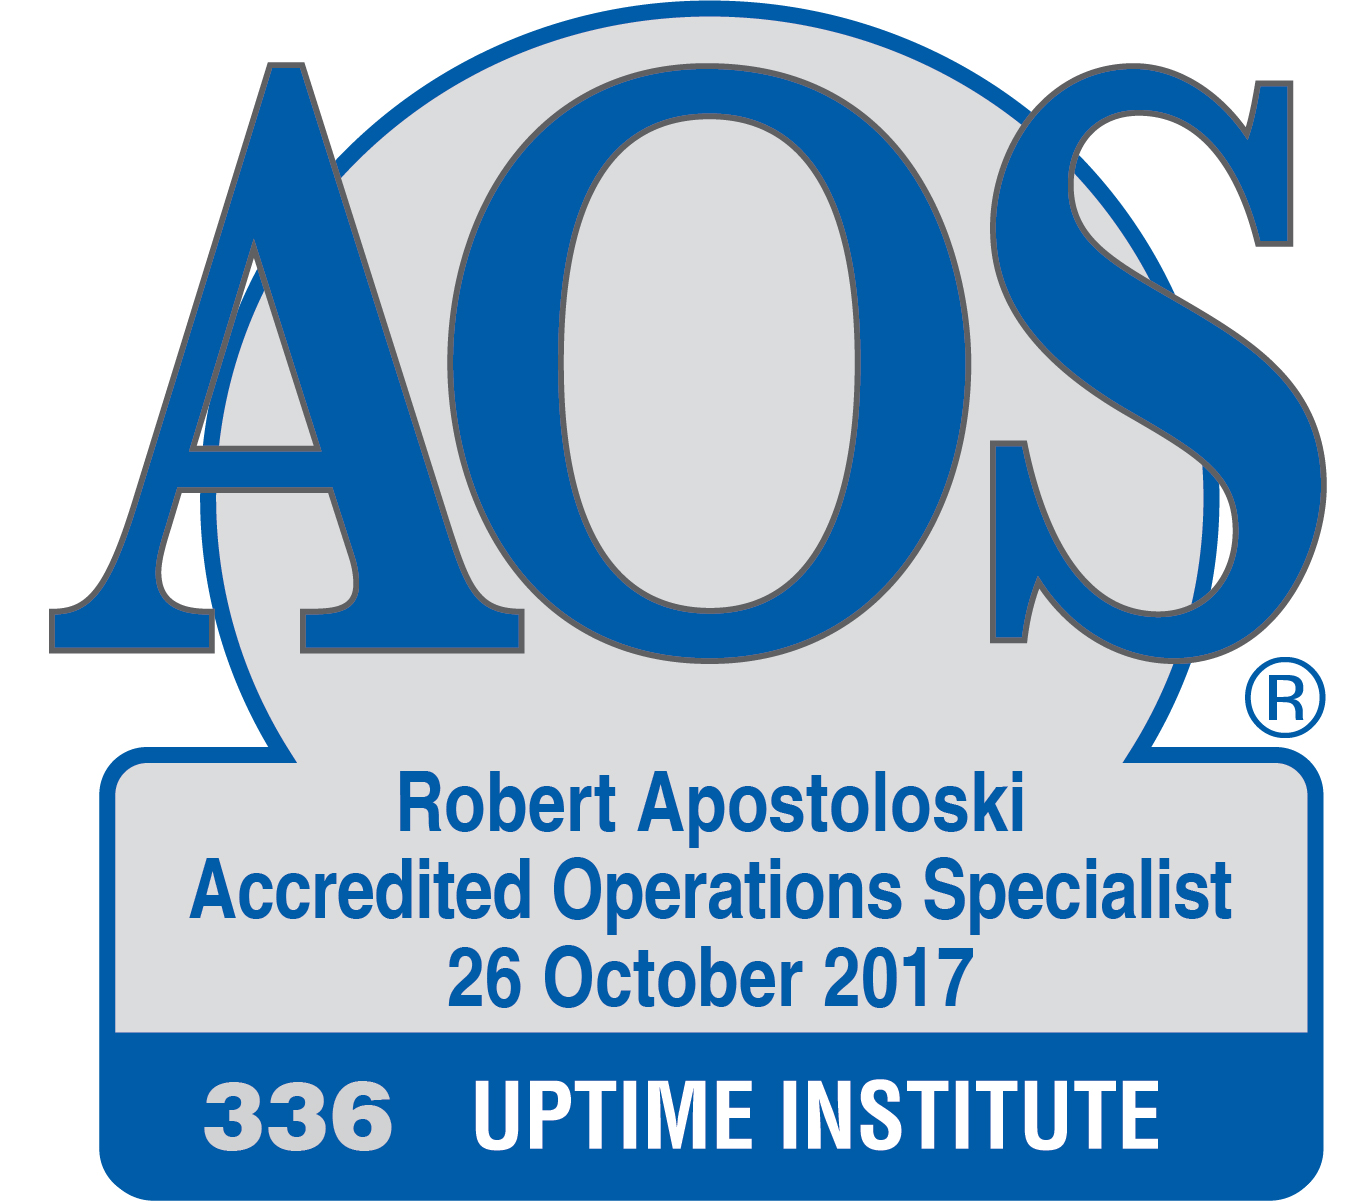 Cipriano Munoz Banos.Accredited Operations Specialist Roster Uptime Institute Llc